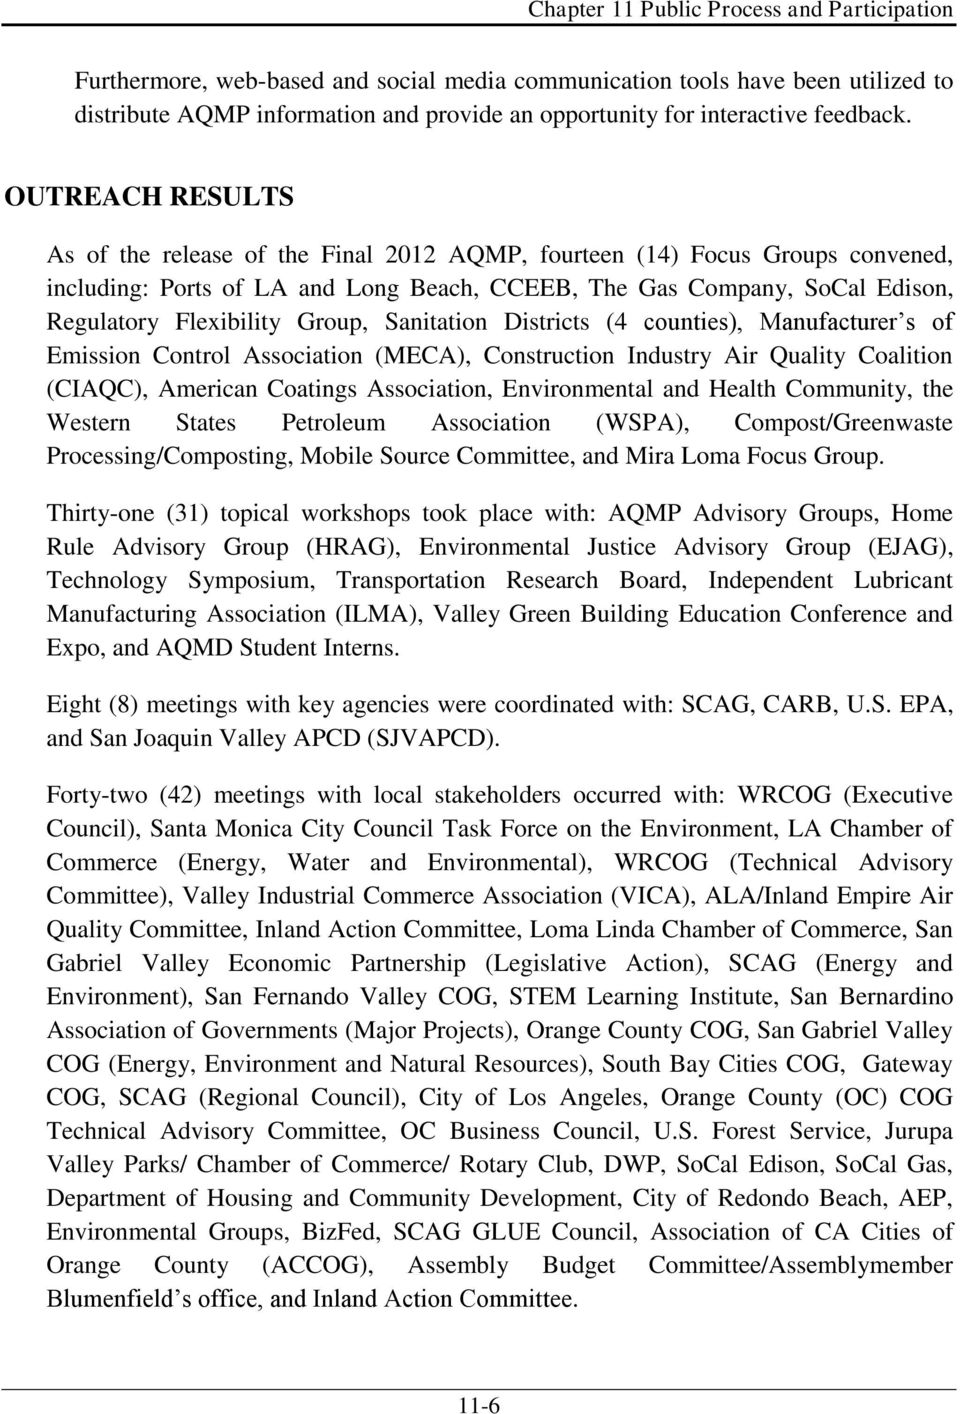 OUTREACH RESULTS As of the release of the Final 2012 AQMP, fourteen (14) s convened, including: Ports of LA and Long Beach, CCEEB, The Gas Company, SoCal Edison, Regulatory Flexibility Group,